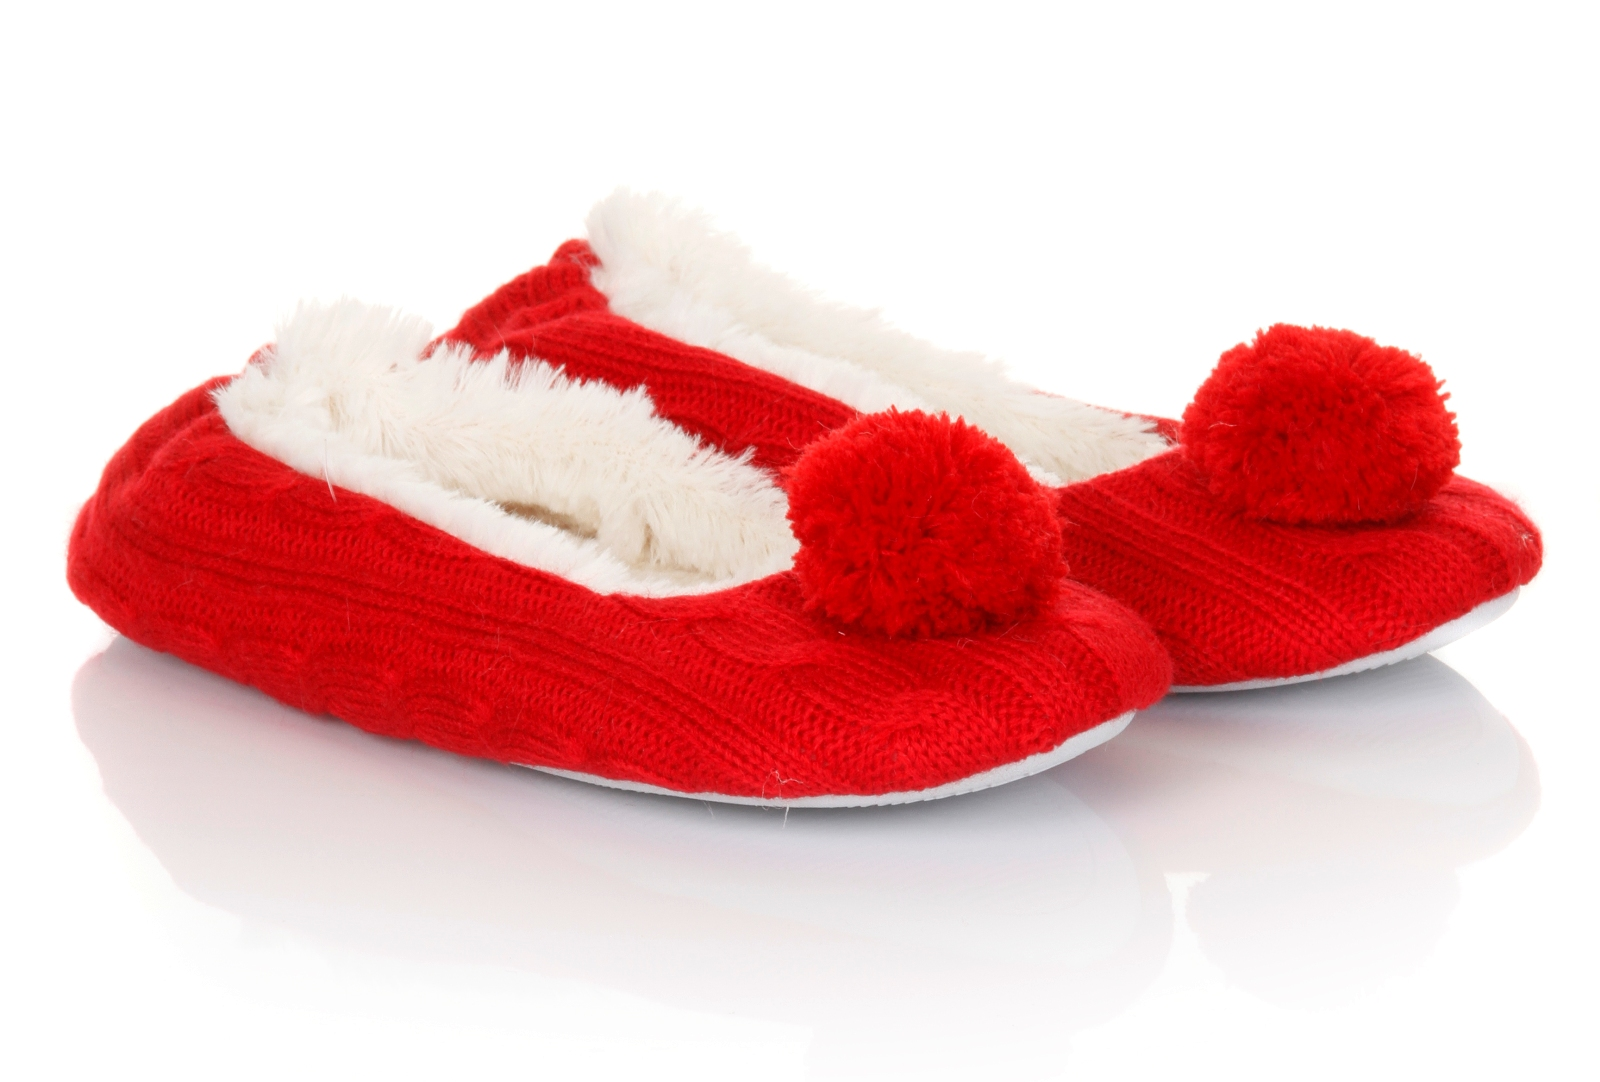 Womens Pom Pom Sherpa Fur Lined Slippers Ballet Pumps Ladies Booties Size UK 3-8